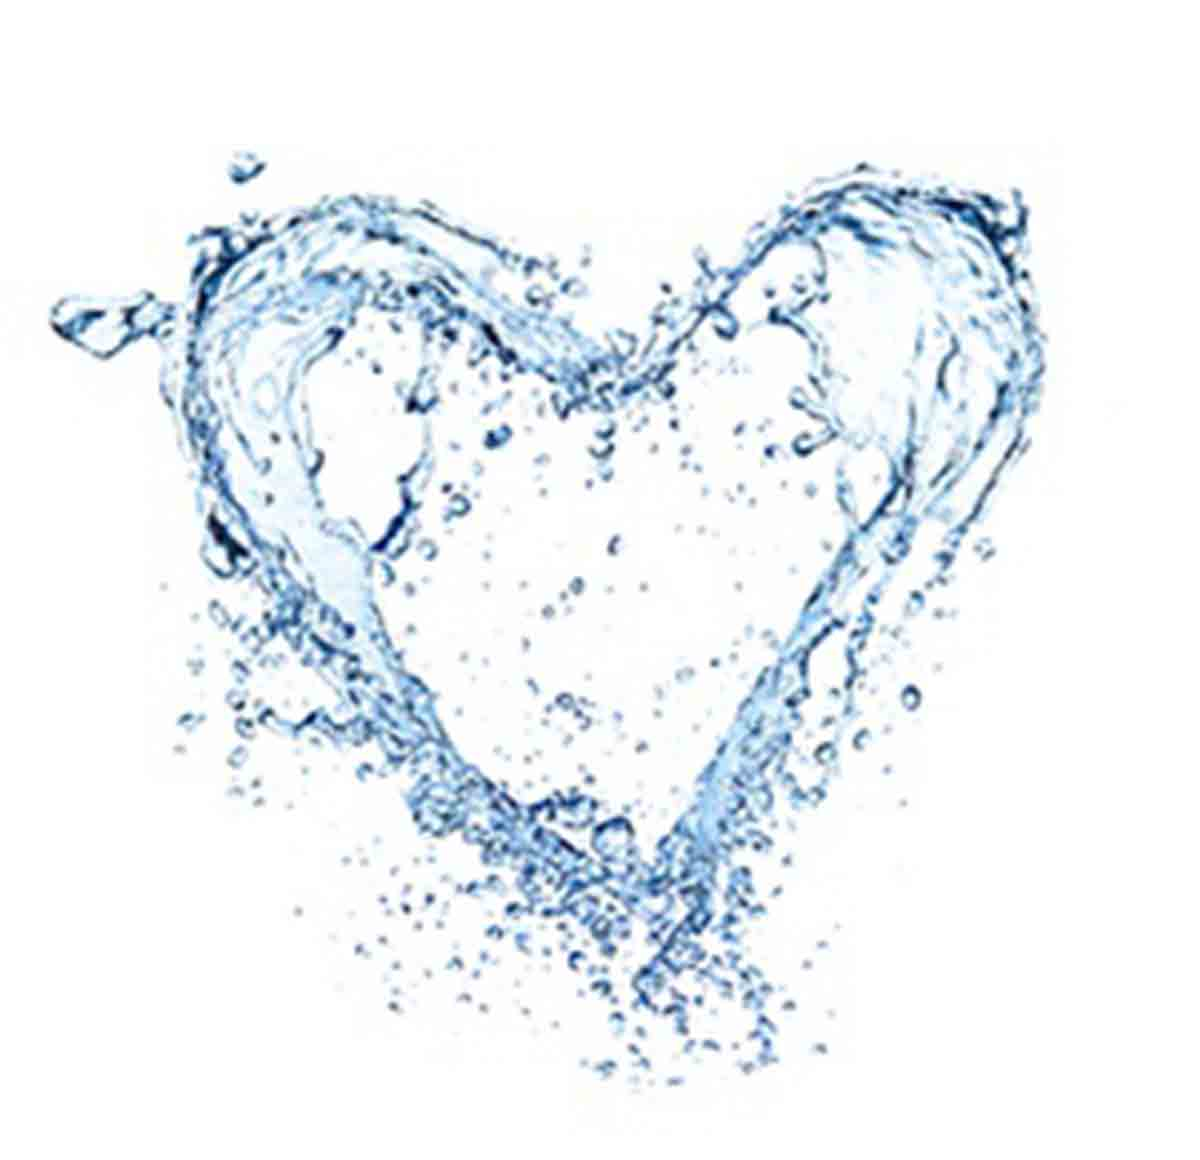 Heart symbol made of water splashes, isolated on white backgRound